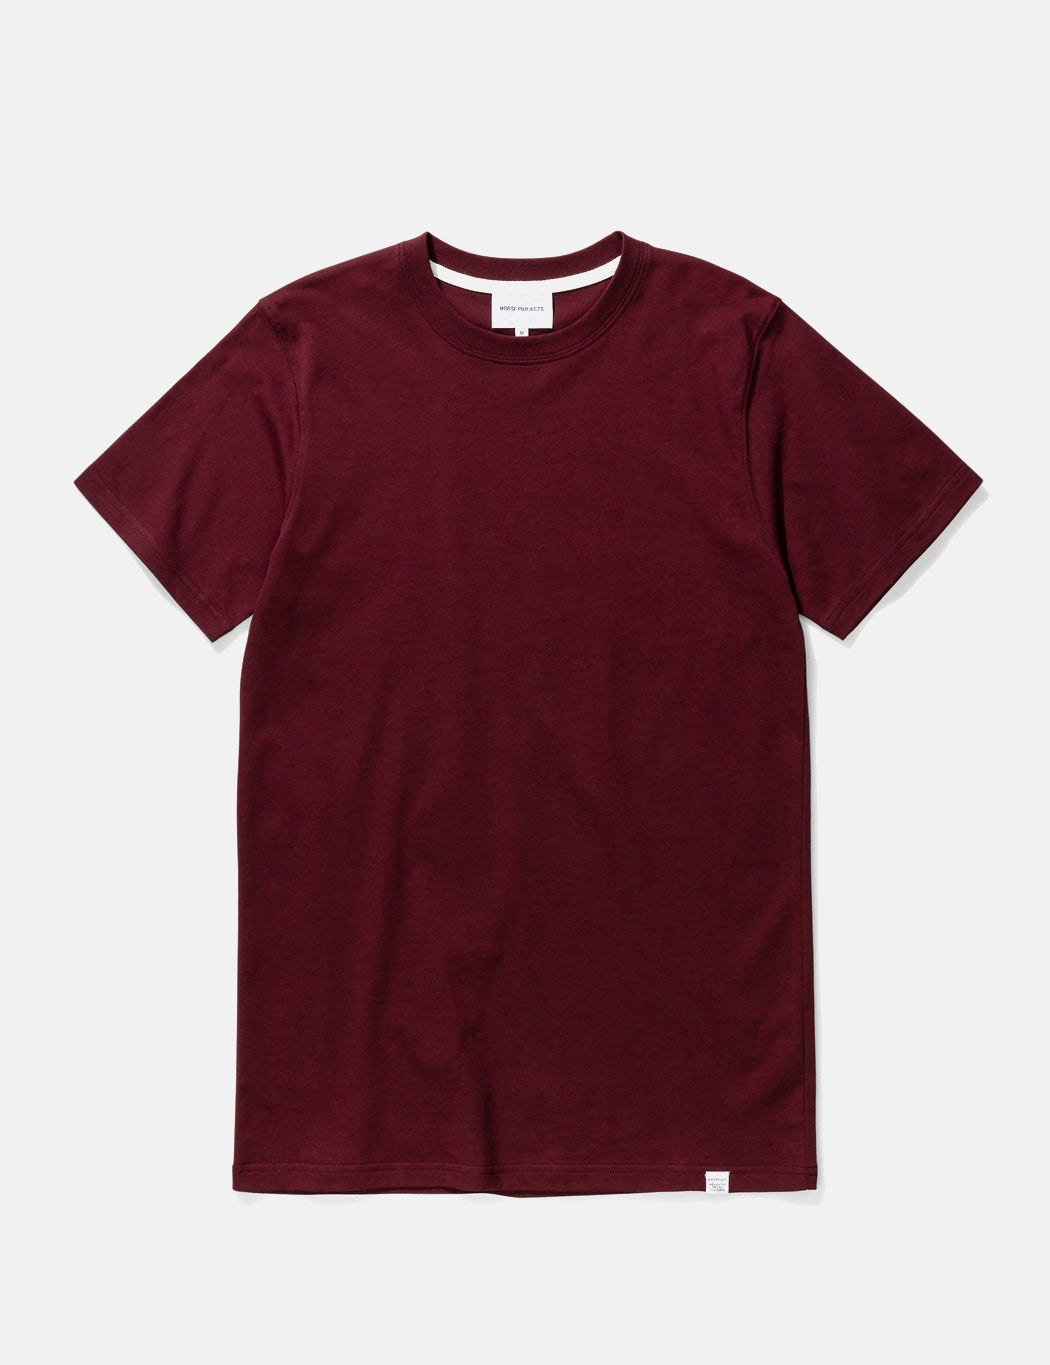 Norse Projects Niels Standard T-Shirt - Mulberry Red | URBAN EXCESS.